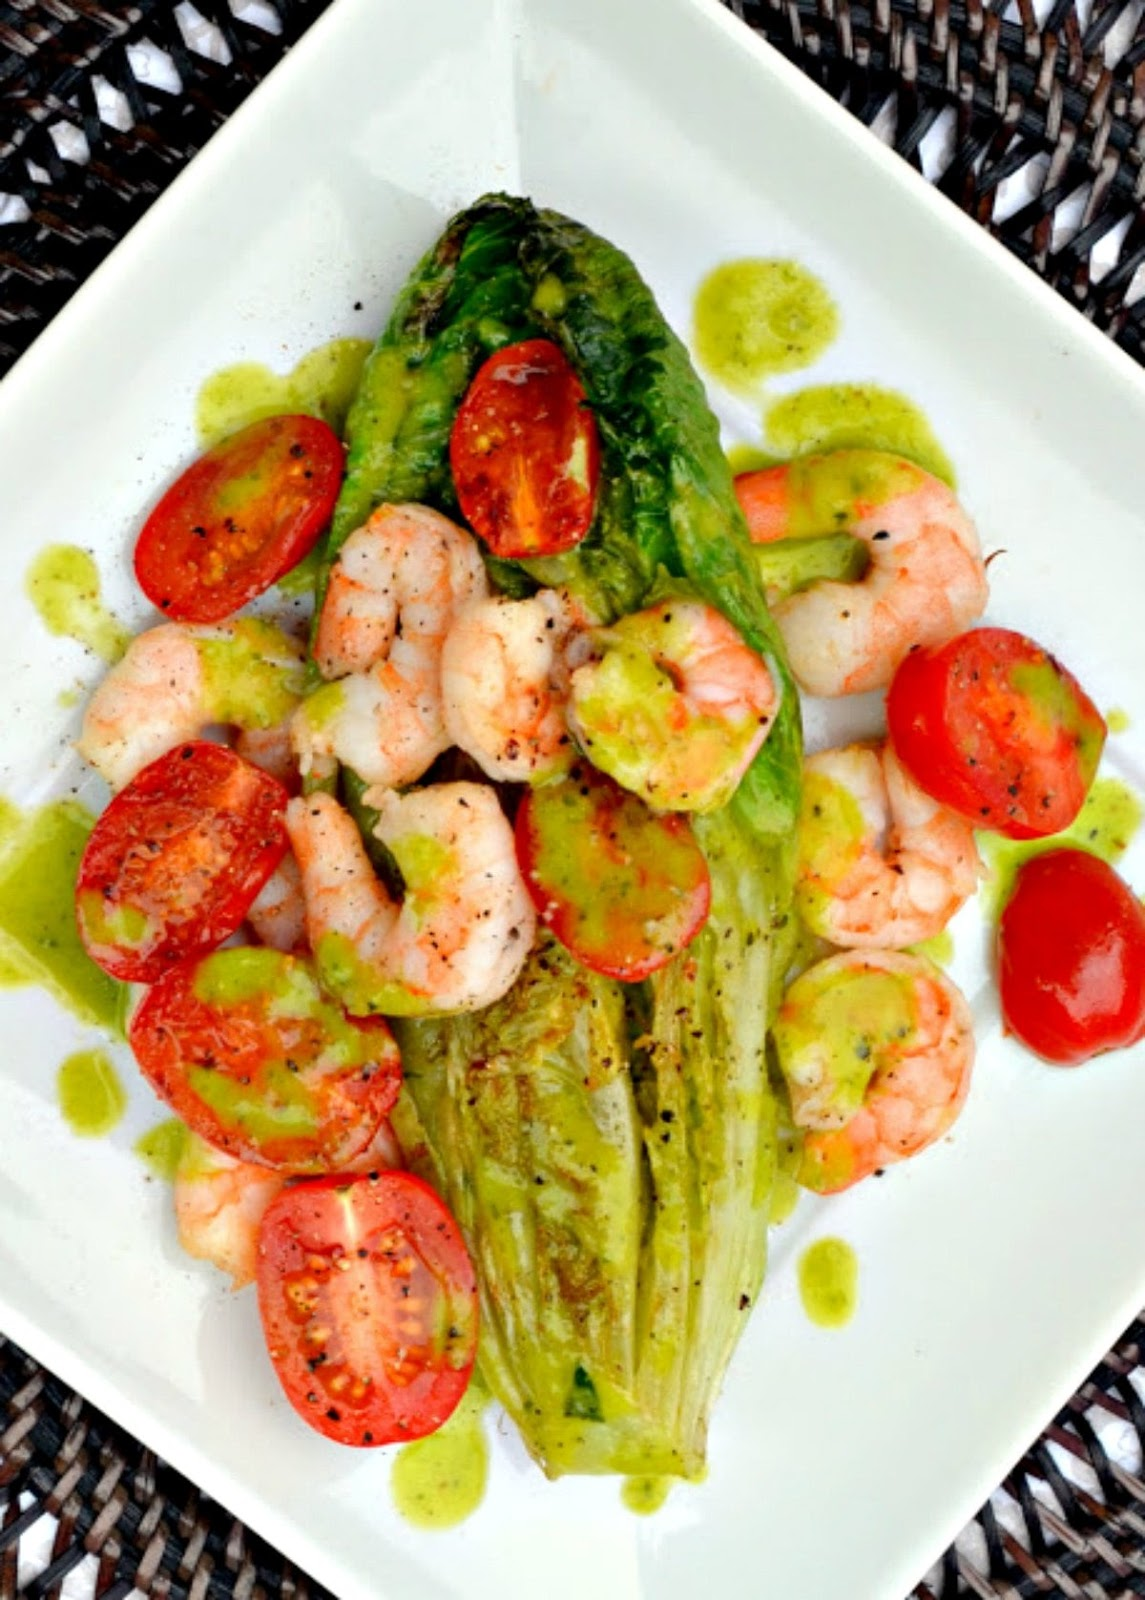 Grilled Romaine Salad with Shrimp and a Basil Vinaigrette is a favorite warm comfort food salad using hearts of Romaine. A favorite main dish or side from Serena Bakes Simply From Scratch.